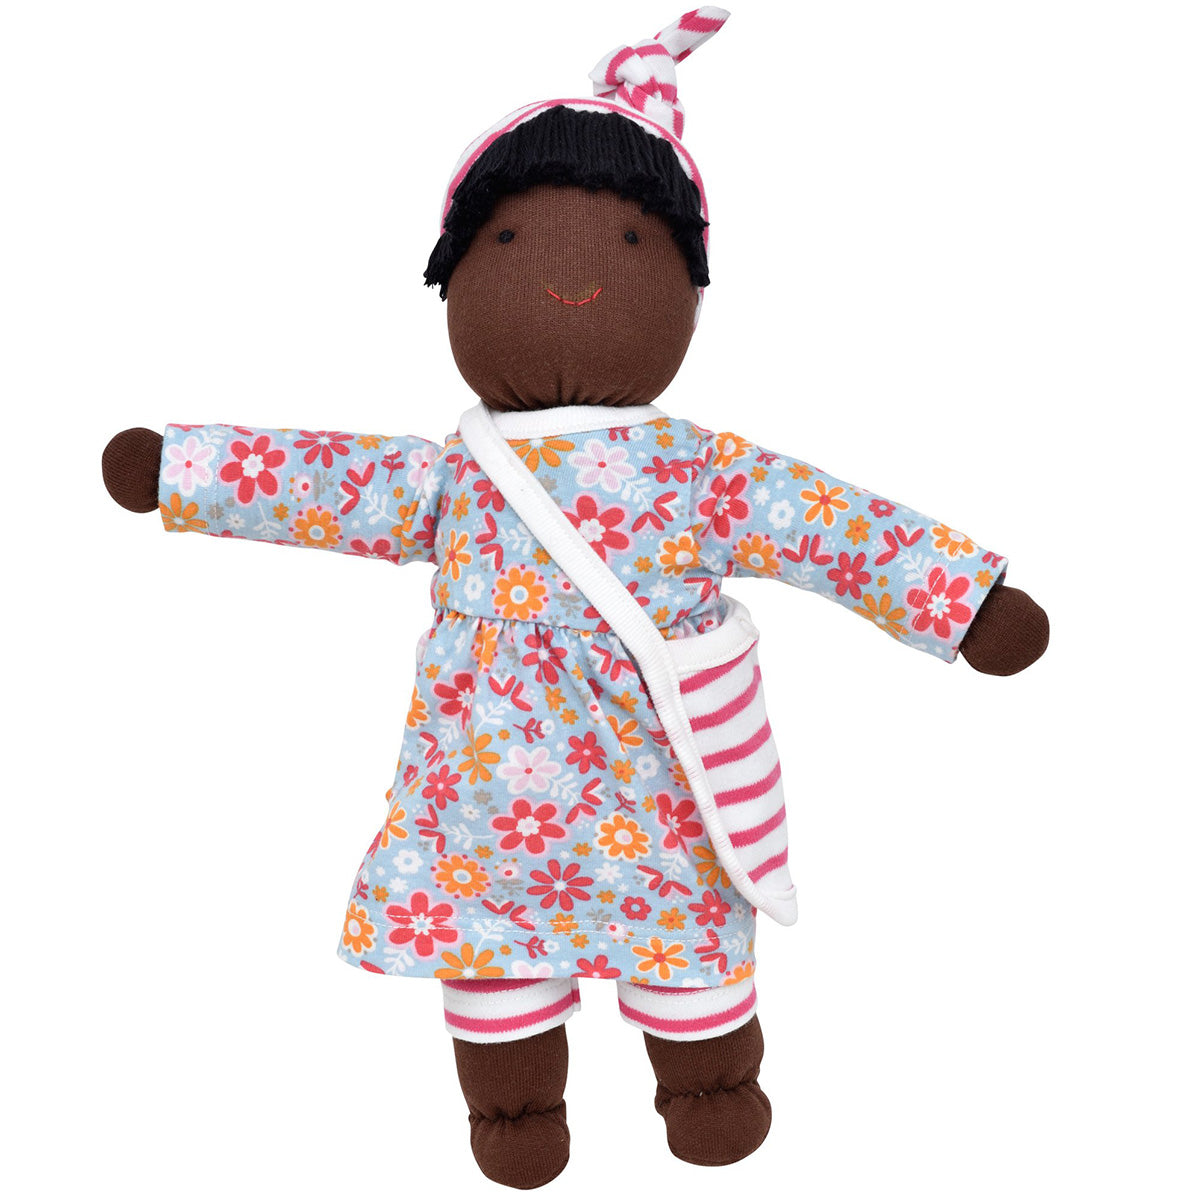 Under the Nile Organic Sasha Dress Up Doll